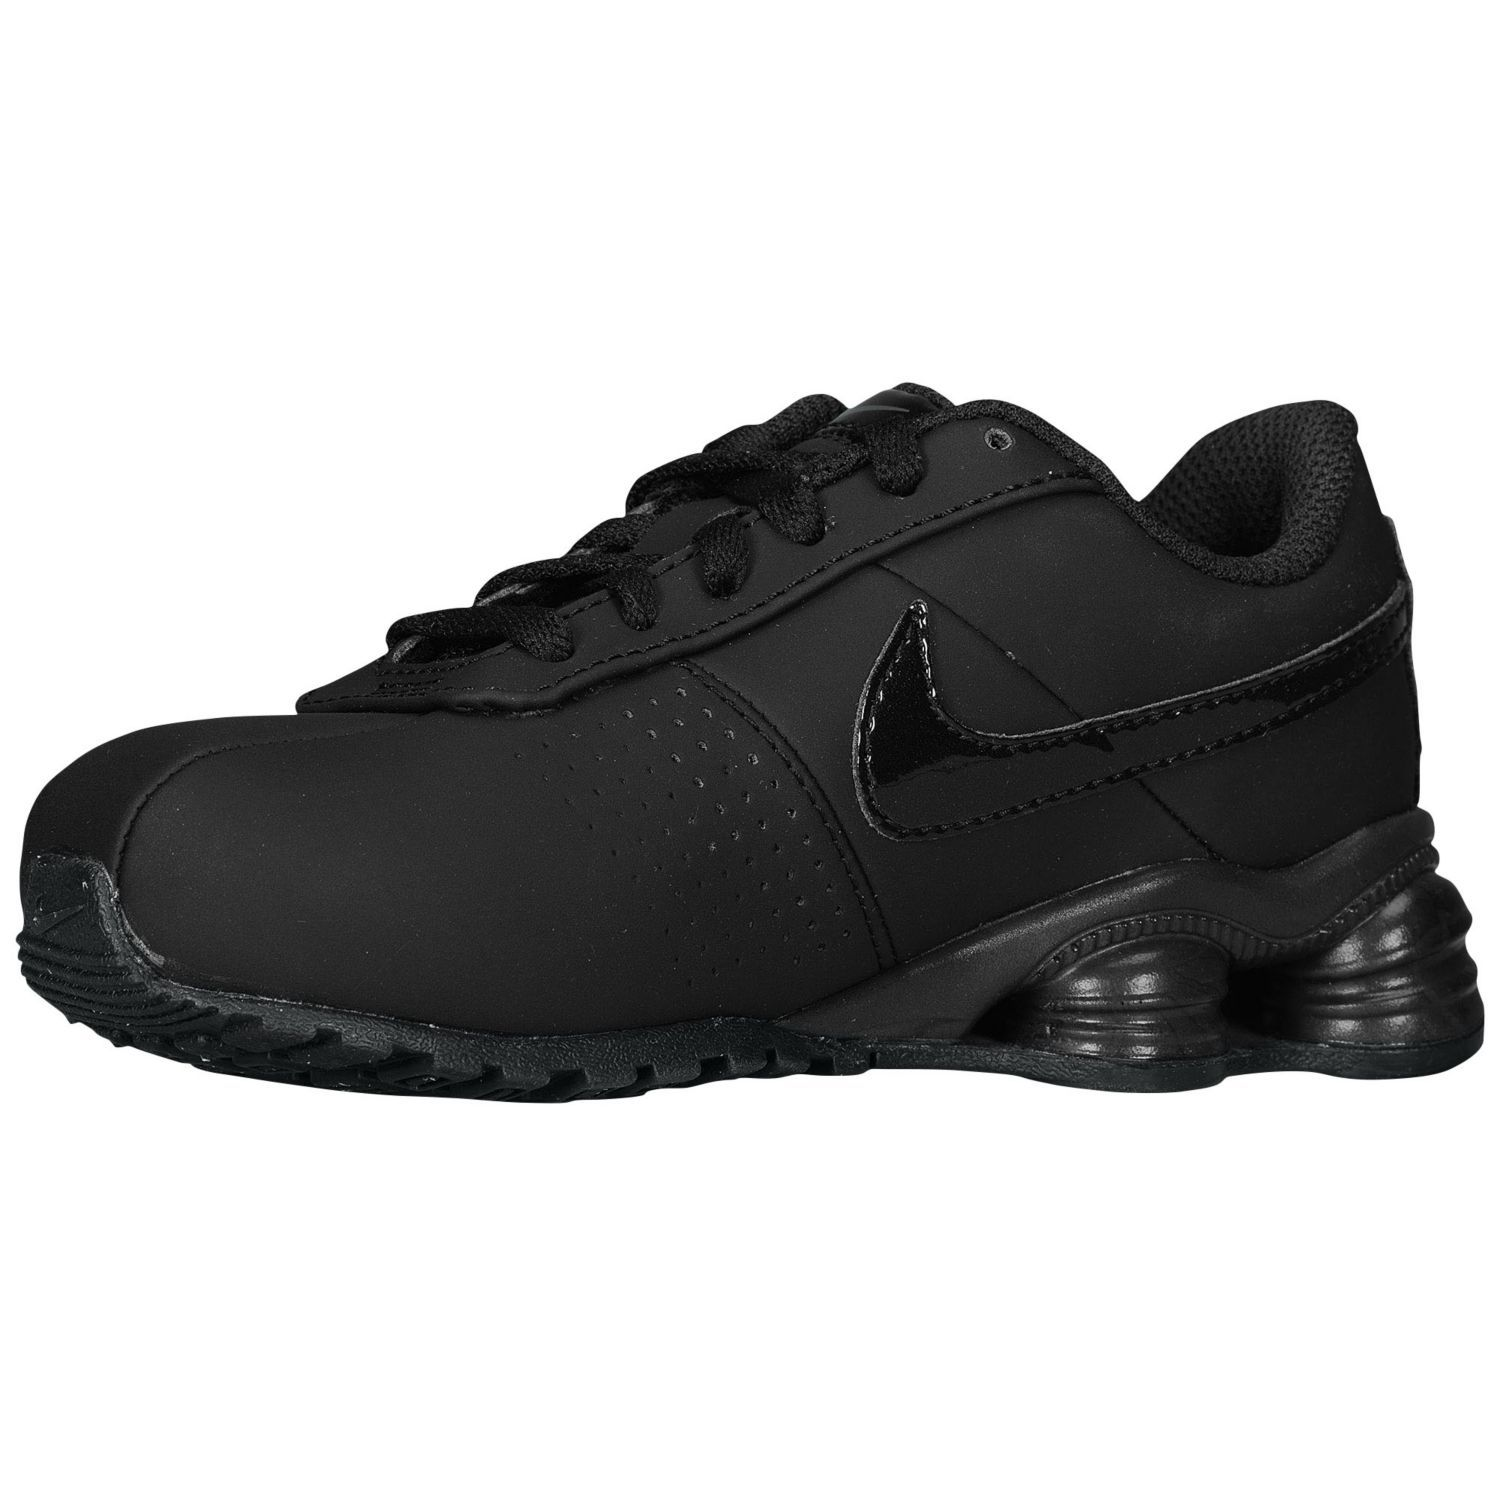 c8e89a00a5c3 Nike Shox Deliver - Boys  Preschool - Running - Shoes - Black Black  Anthracite